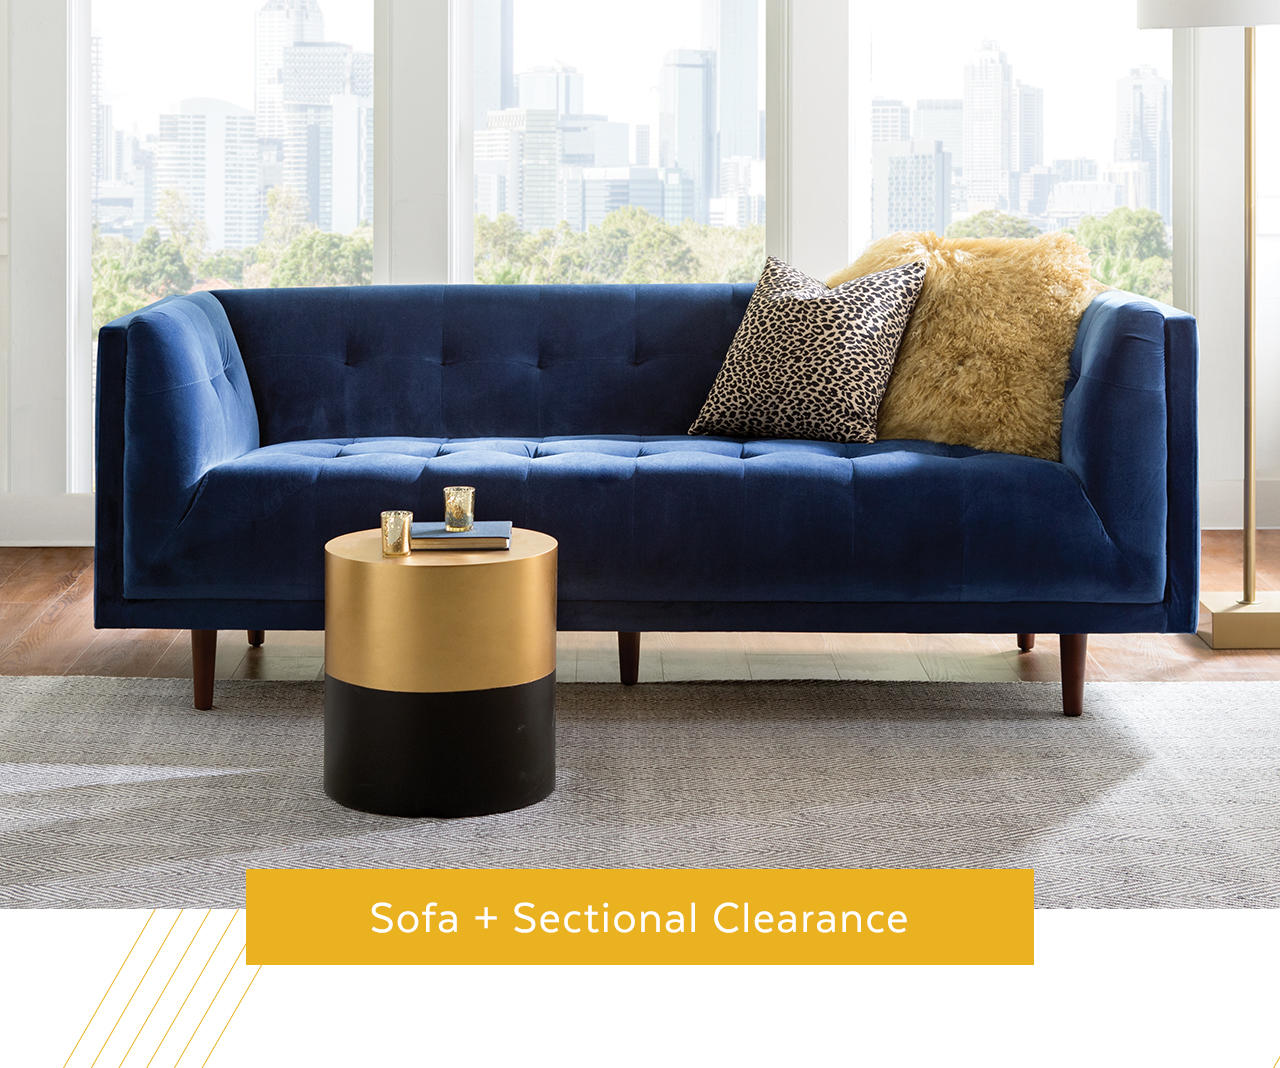 Sofa and Sectional Clearance